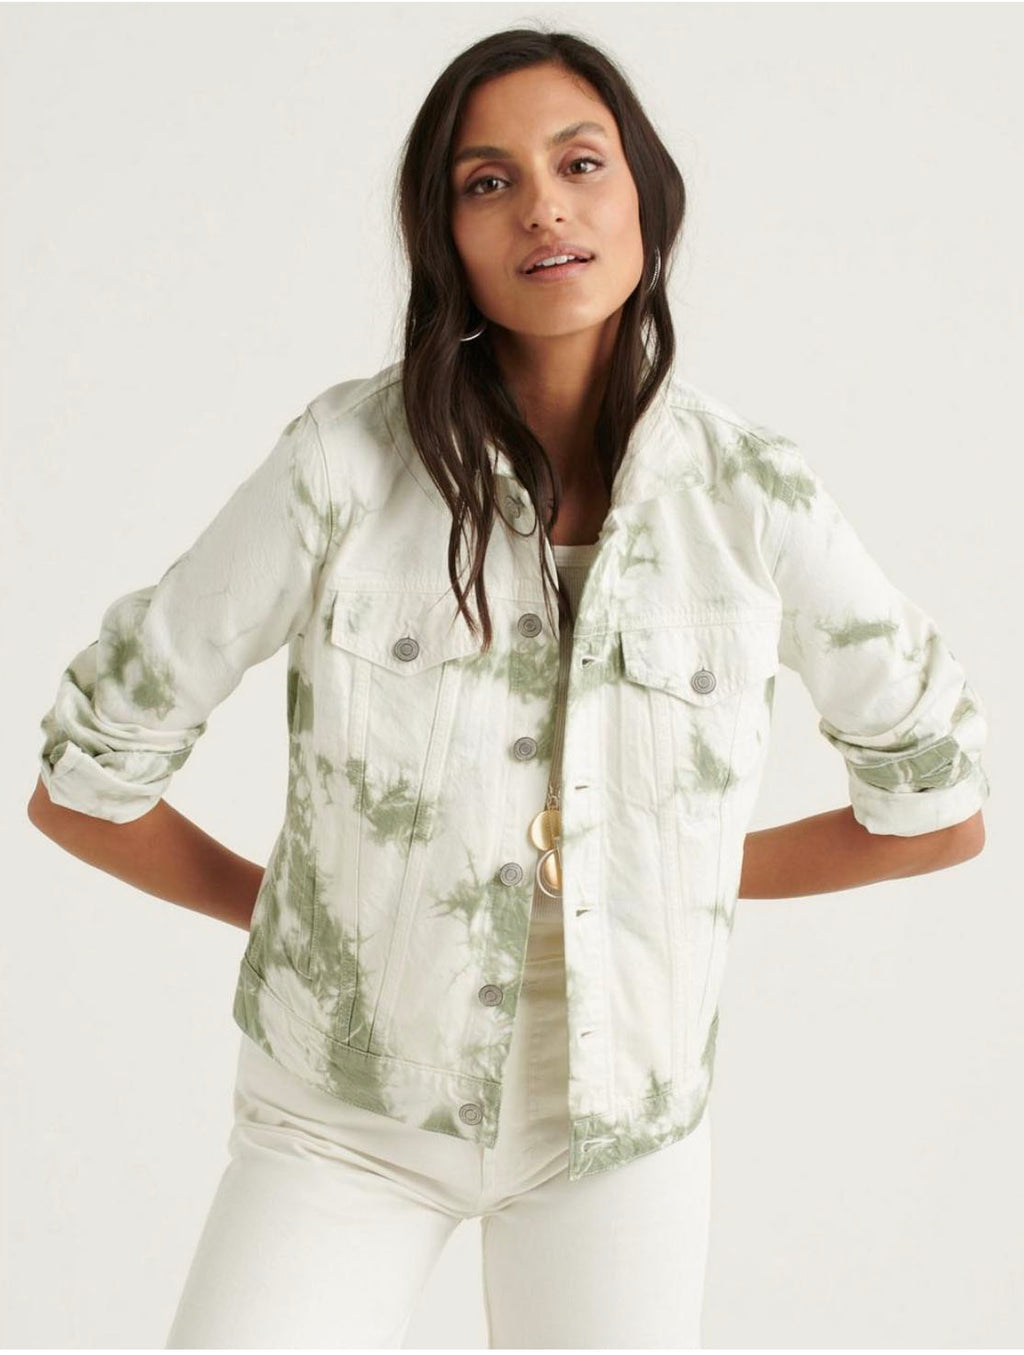 Lucky Brand Tomboy Trucker Jacket in Green Tie Dye